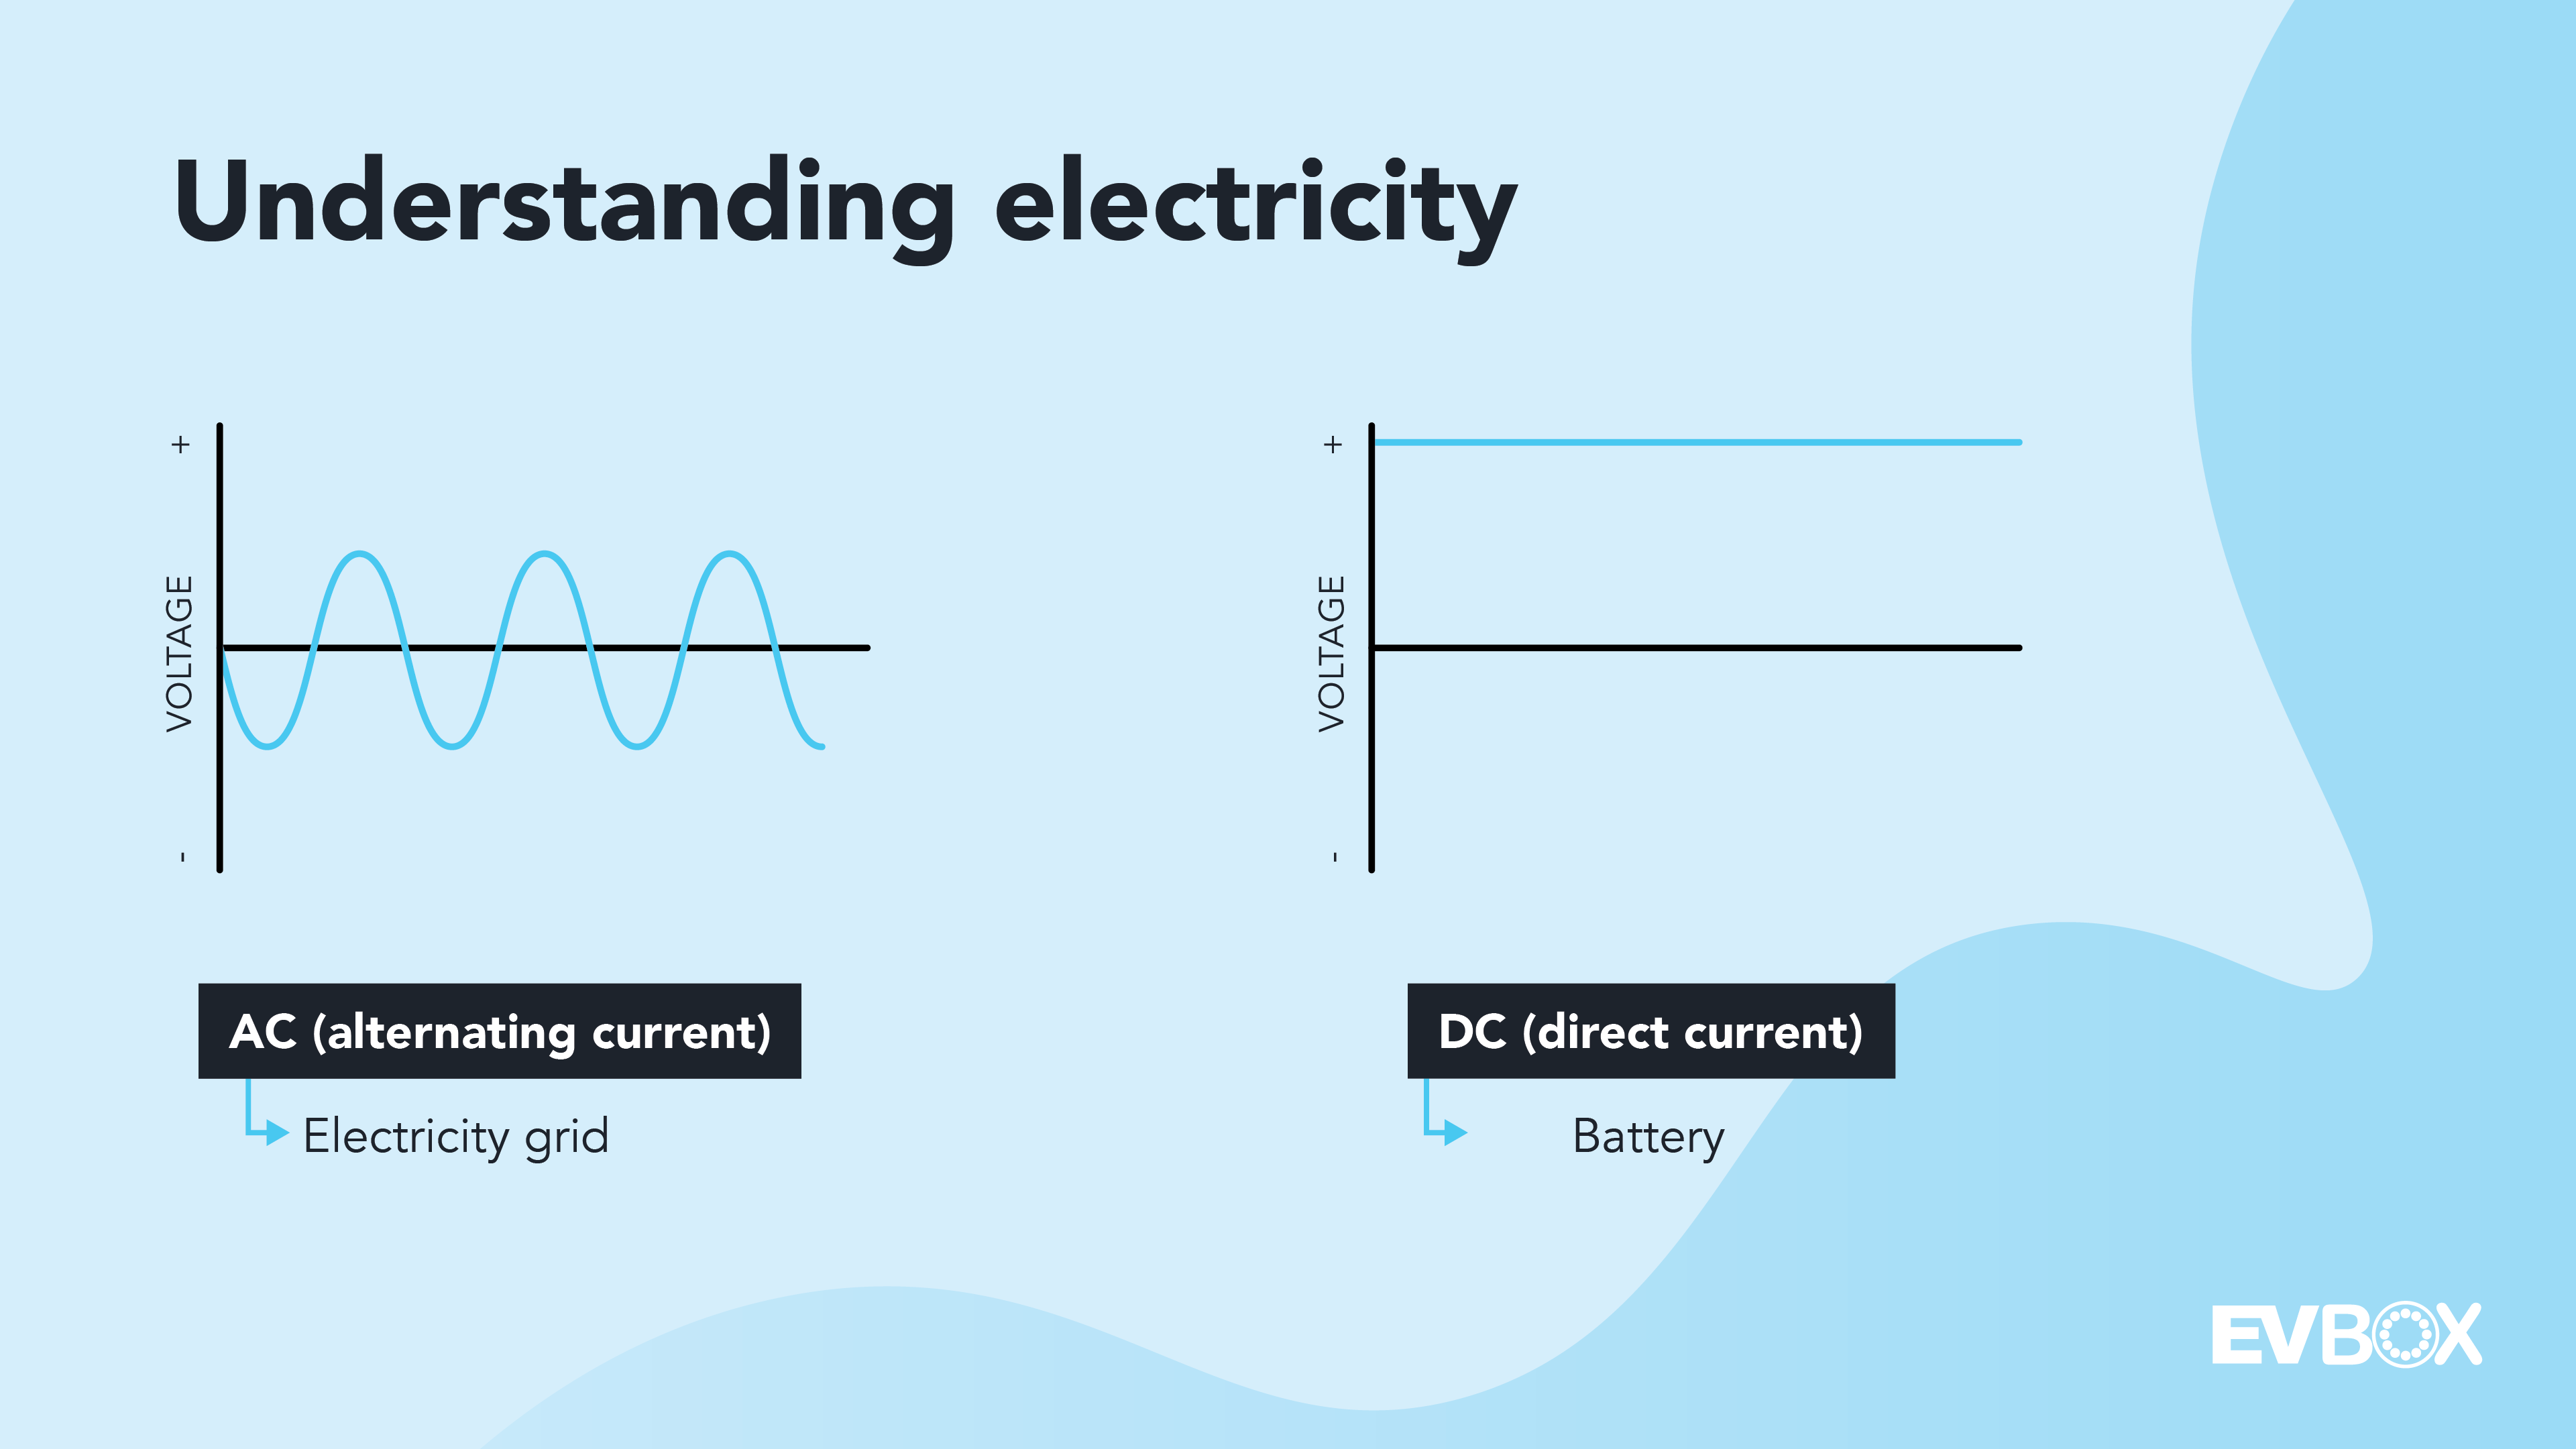 Two graphs showing the way electricity flows. The first one shows how alternating current (AC) changes direction periodically, and the second graph shows how direct current (DC) flows in a straight line. AC comes from the grid and DC is stored in batteries.